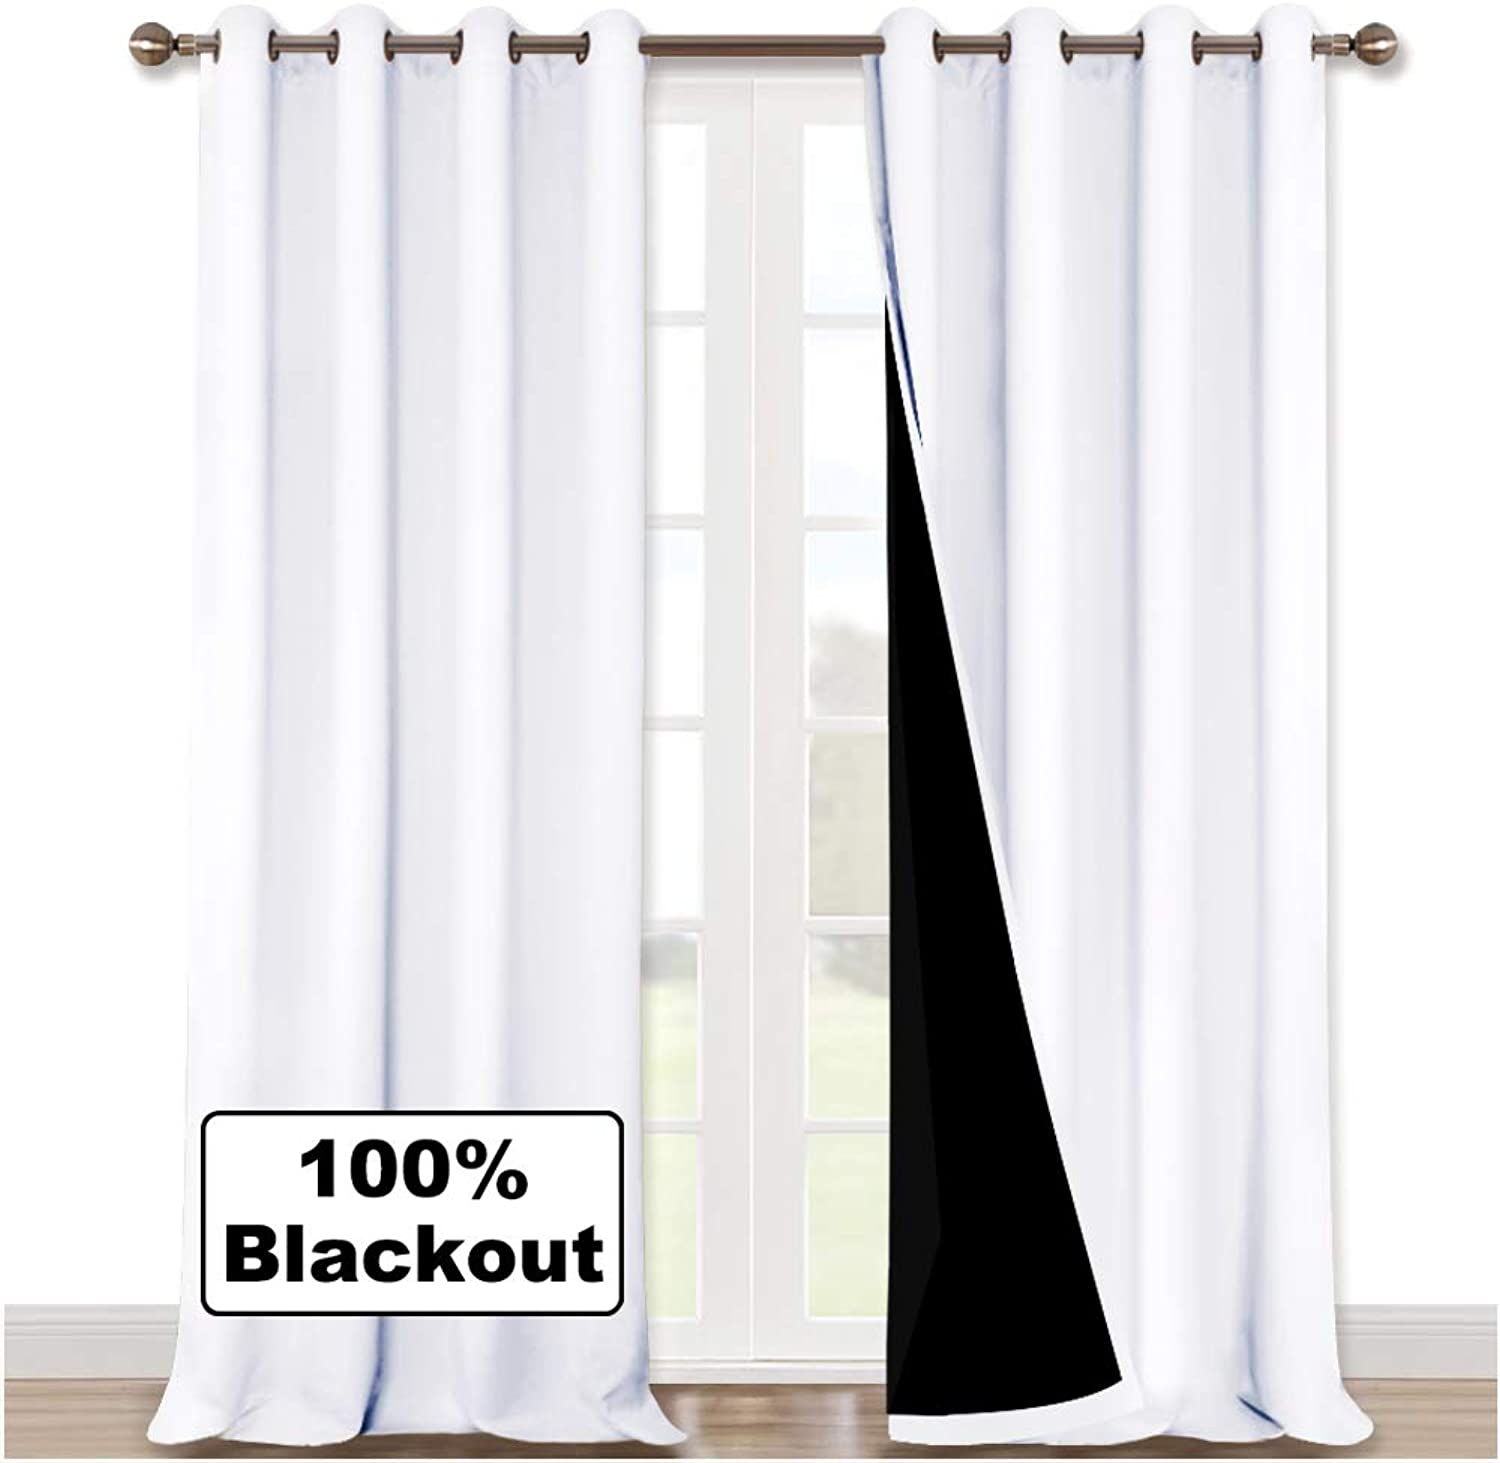 NICETOWN White 100% Blackout Curtains for Windows, Super Heavy-Duty Black Lined Total Darkness Drapes for Bedroom, Privacy Assured Window Treatment for Patio (Pack of 2, 52  W x 108  L)